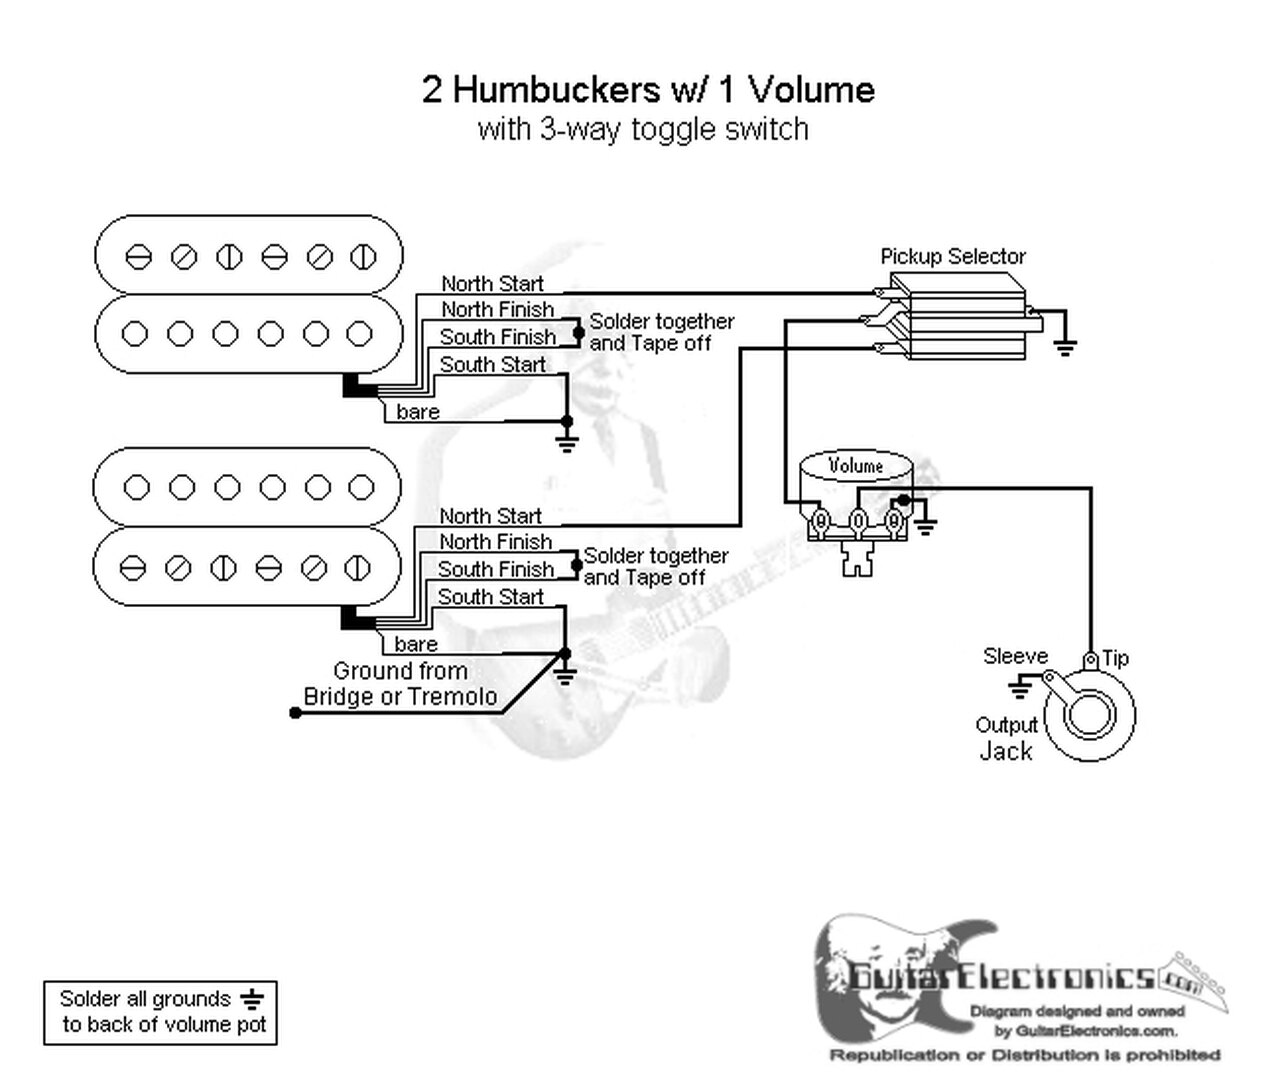 [WLLP_2054]   WX_3568] 5 Way Switch Wiring Diagram Free Picture Wiring Diagram | Free Download 5 Way Switch Wiring Diagram |  | Unde Itive Icaen Jitt Hapolo Phae Mohammedshrine Librar Wiring 101